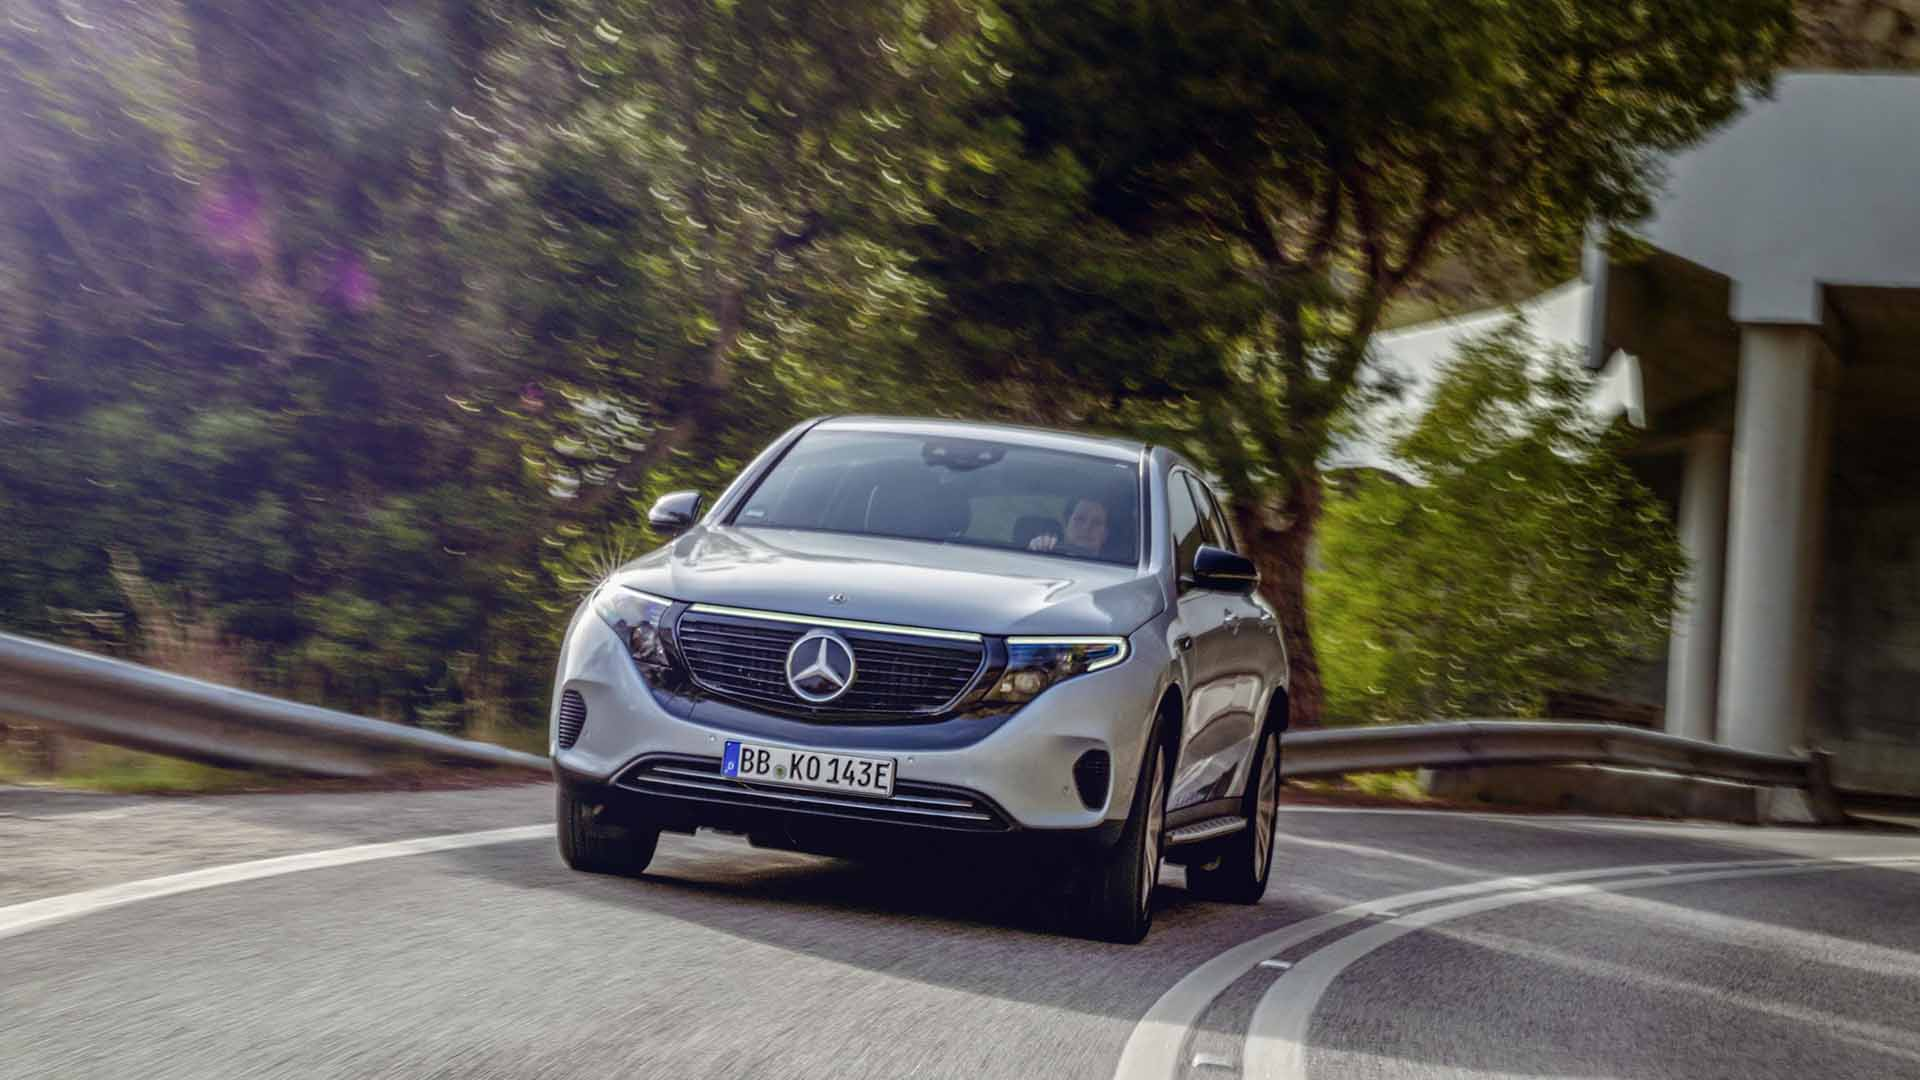 6. Mercedes-Benz EQC